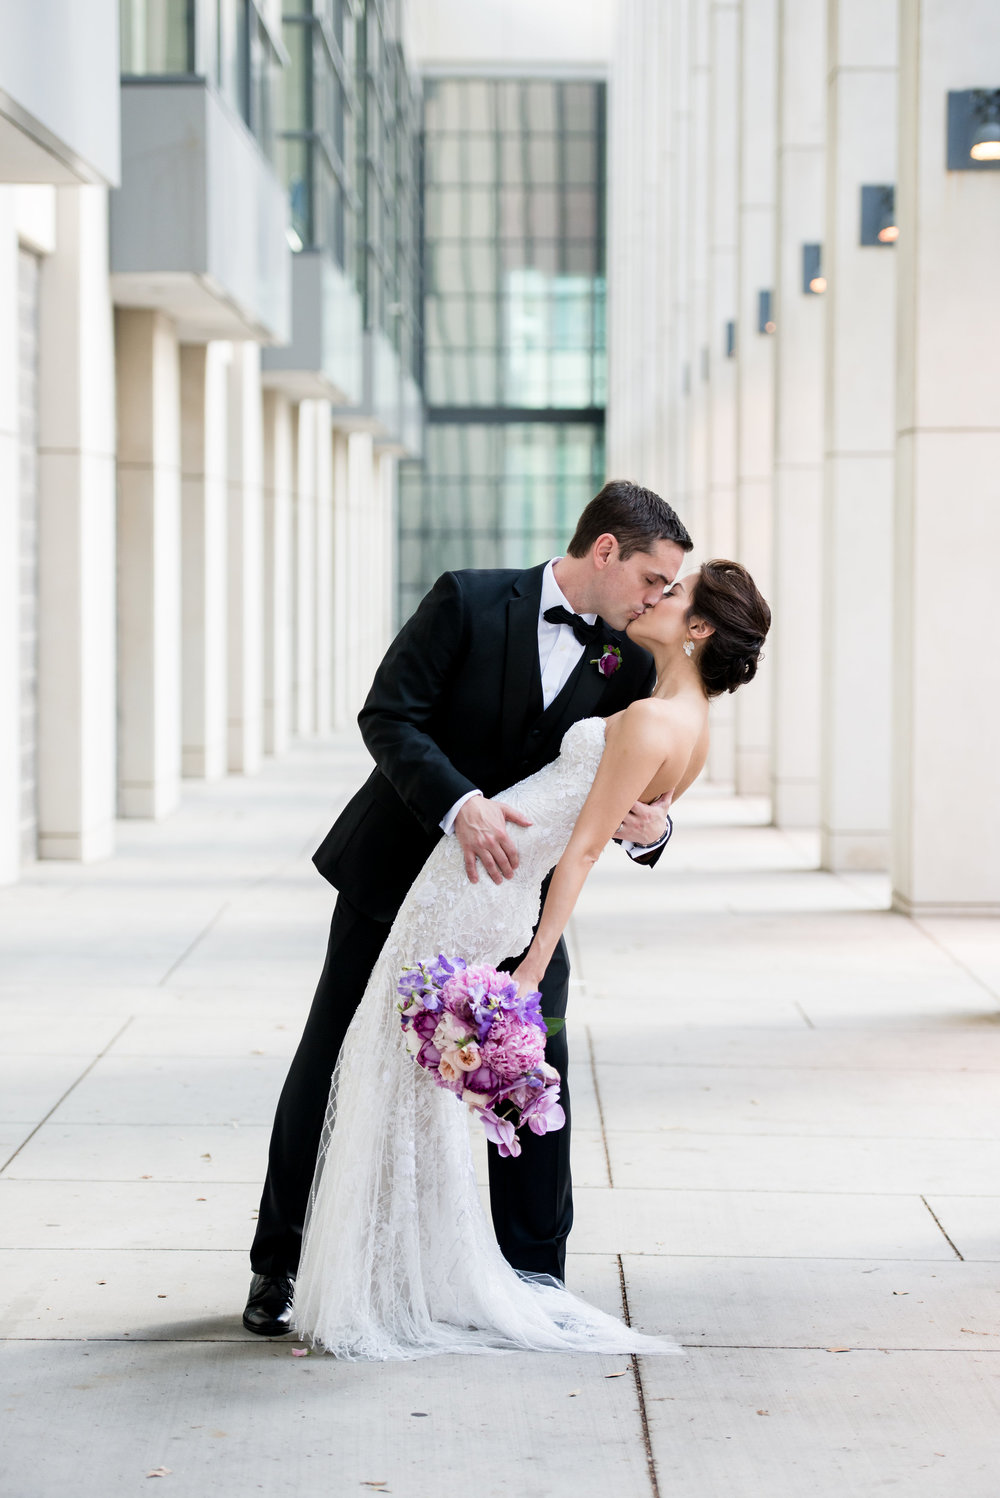 Mint Museum Uptown Wedding - The Graceful Host - Charlotte, North Carolina Wedding